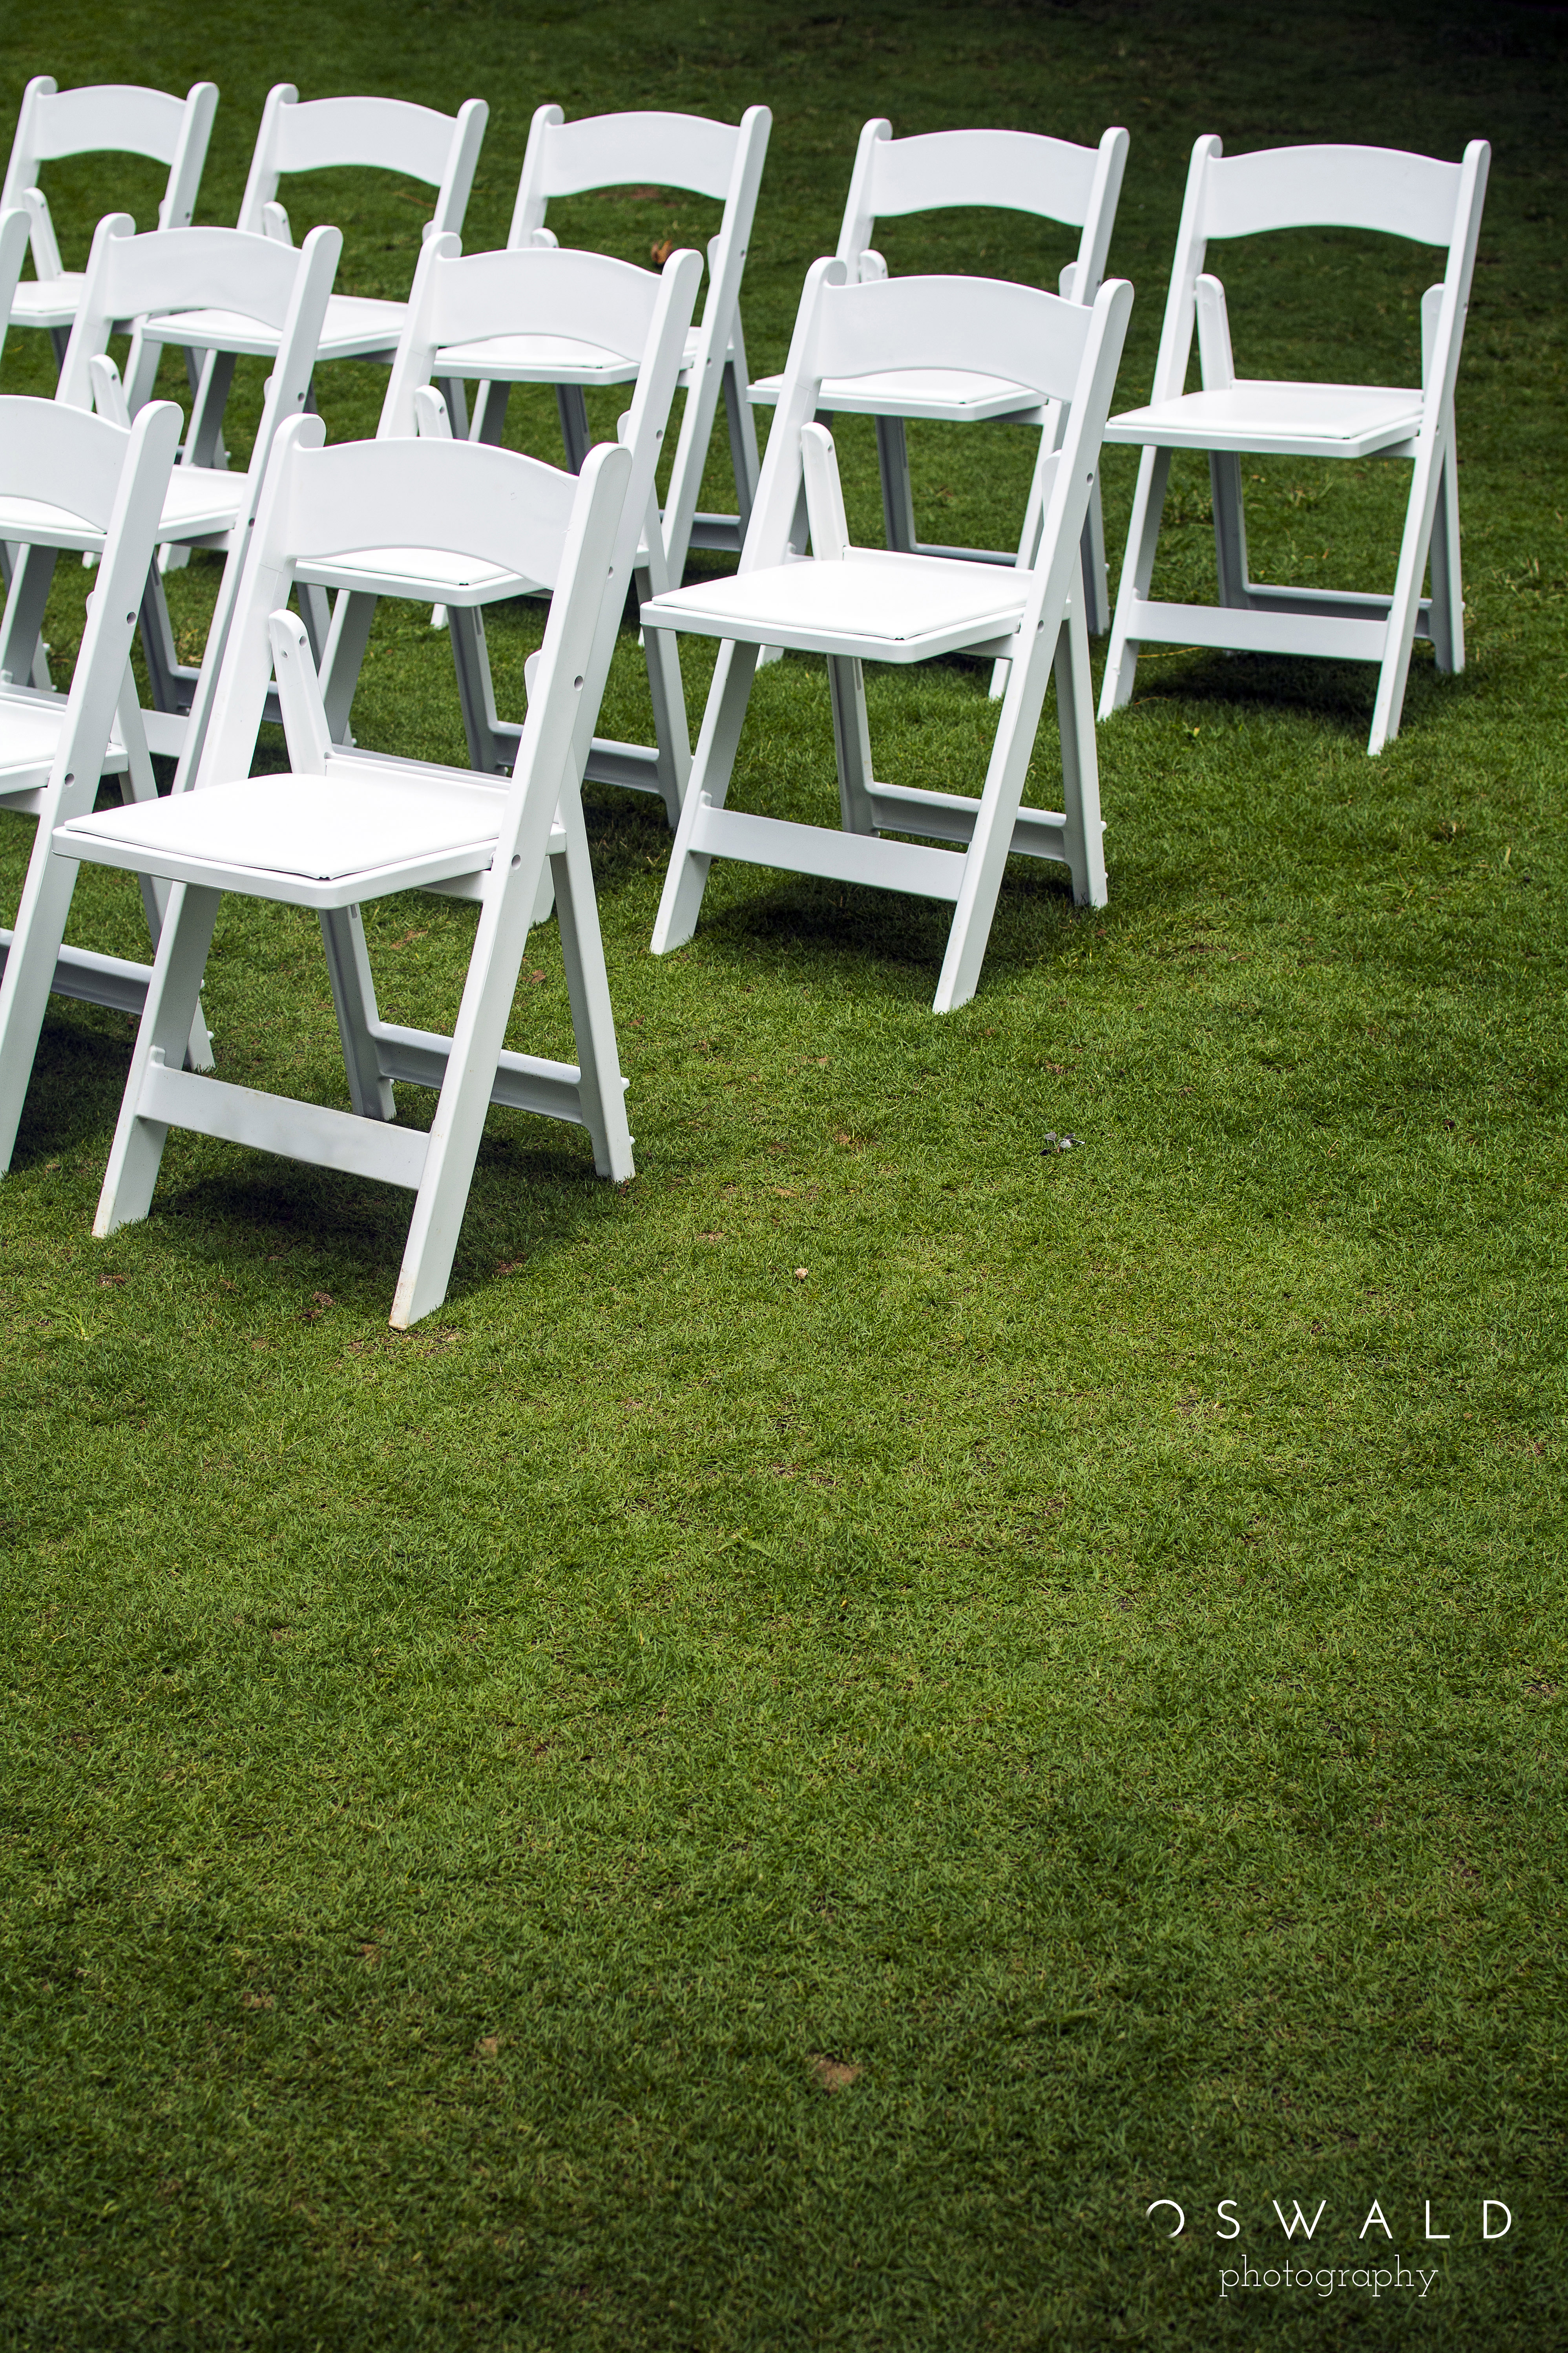 Foldable wedding chairs are set out in a pattern on tropical grass, waiting for wedding guests to arrive.